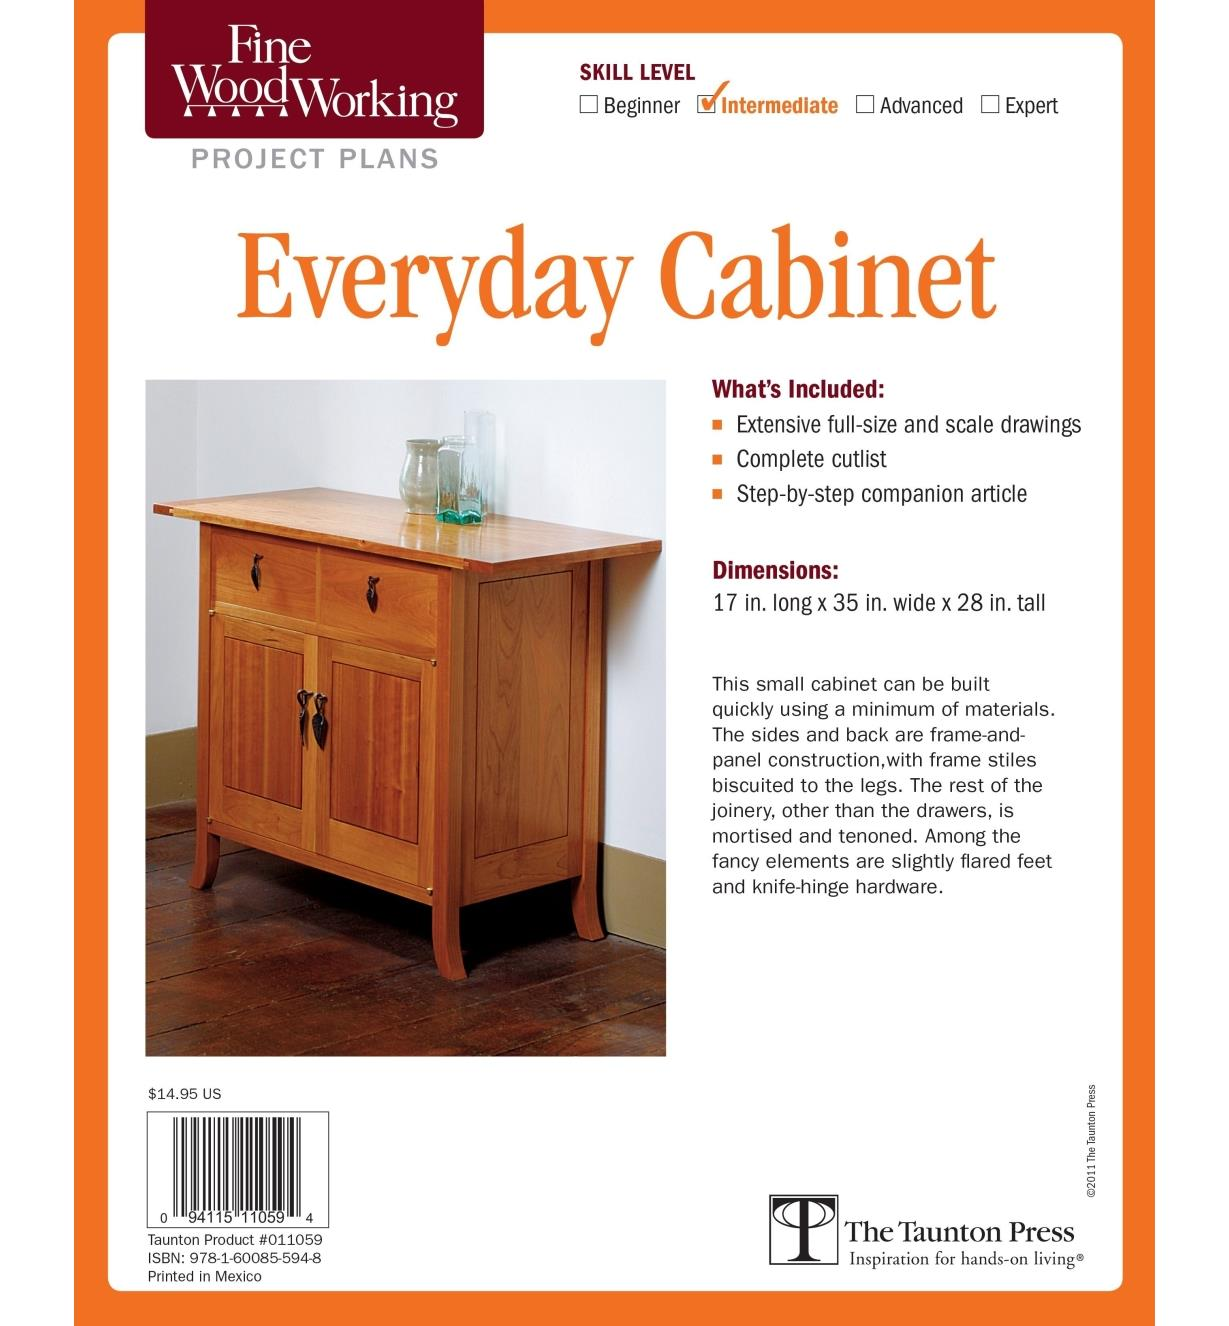 73L2530 - Everyday Cabinet Plan